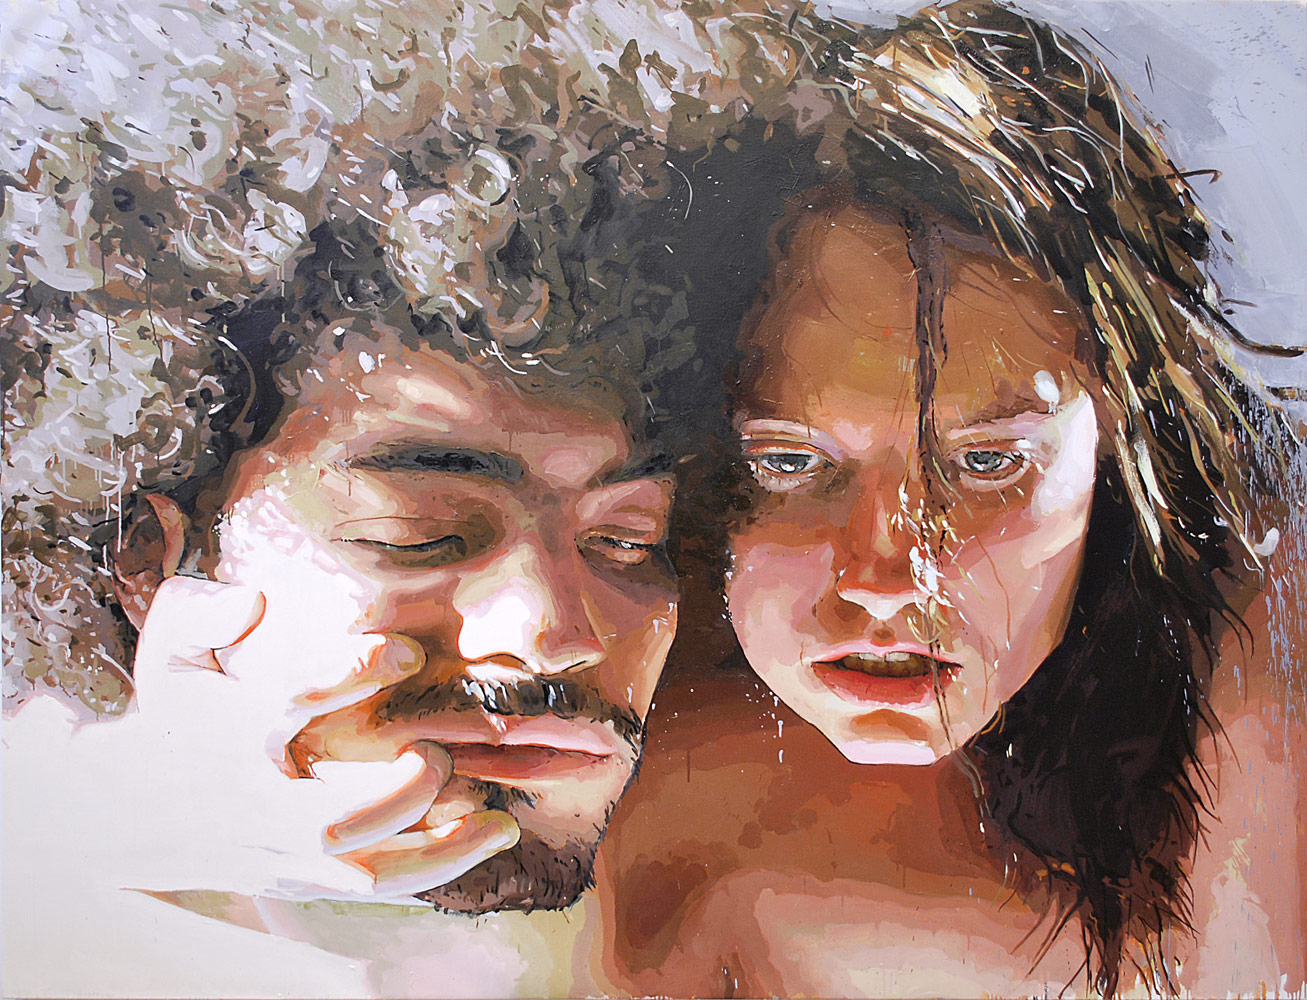 contact1-patrick-earl-hammie-significant-other-cosmic-orgasm-artist-feature-nude-oil-painting